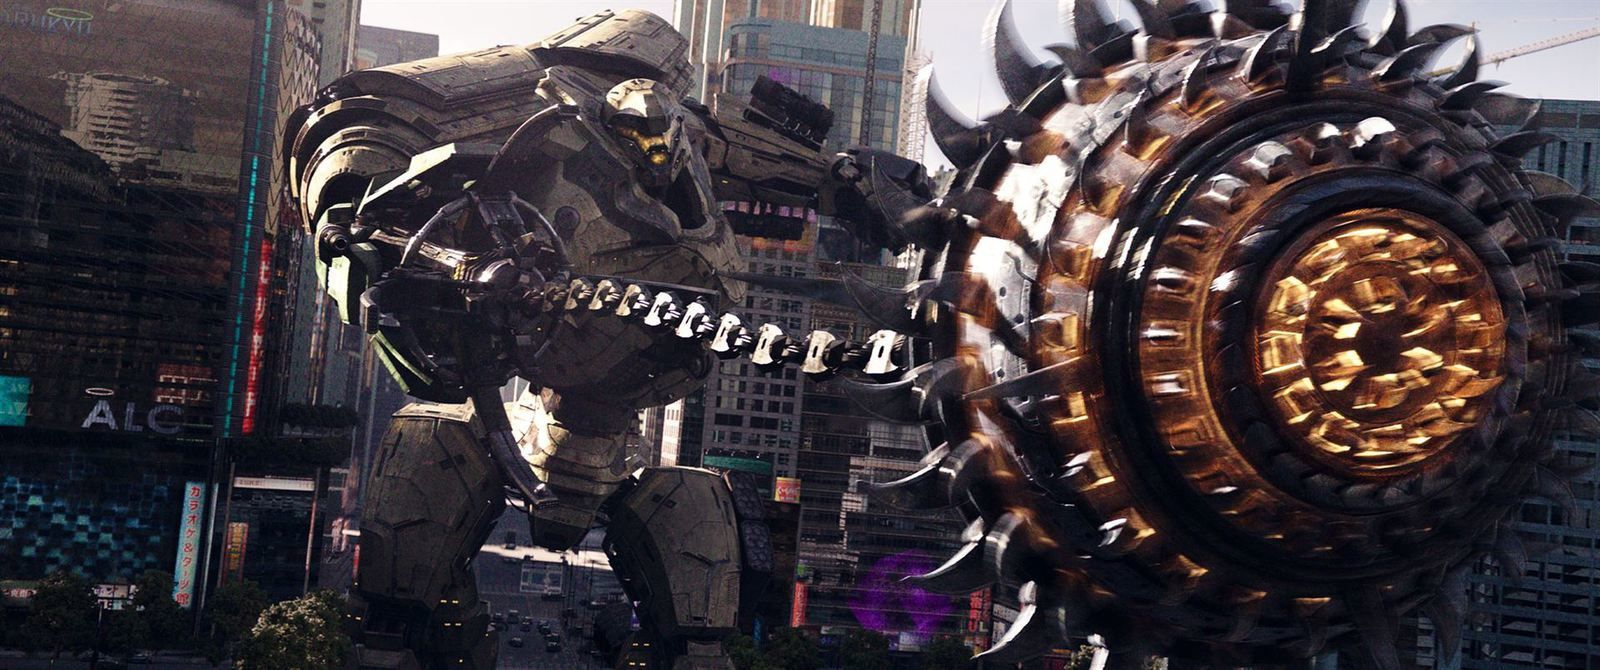 [critique] Pacific Rim Uprising